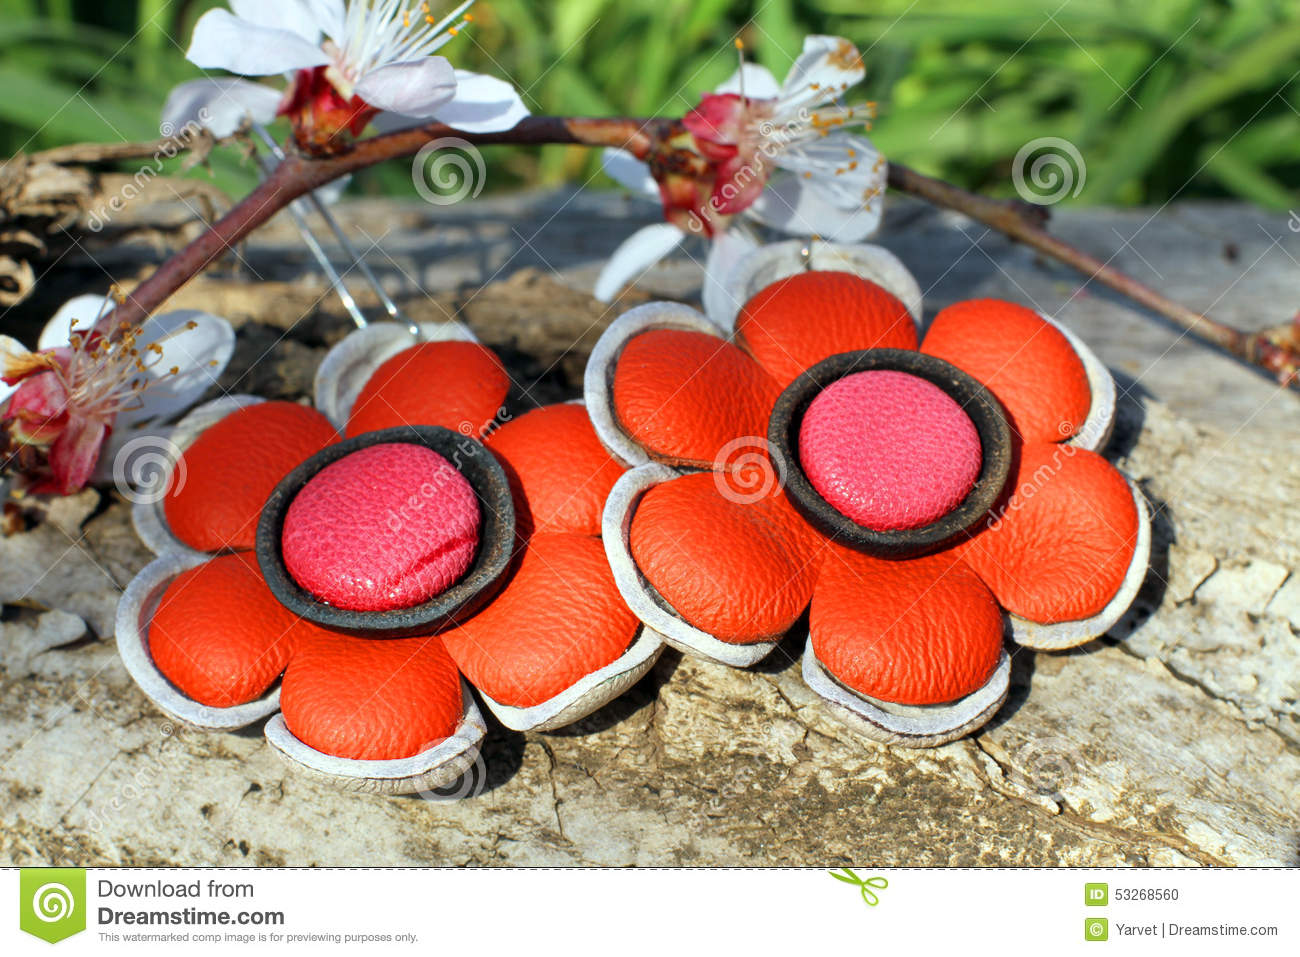 Handmade leather earrings on the nature background